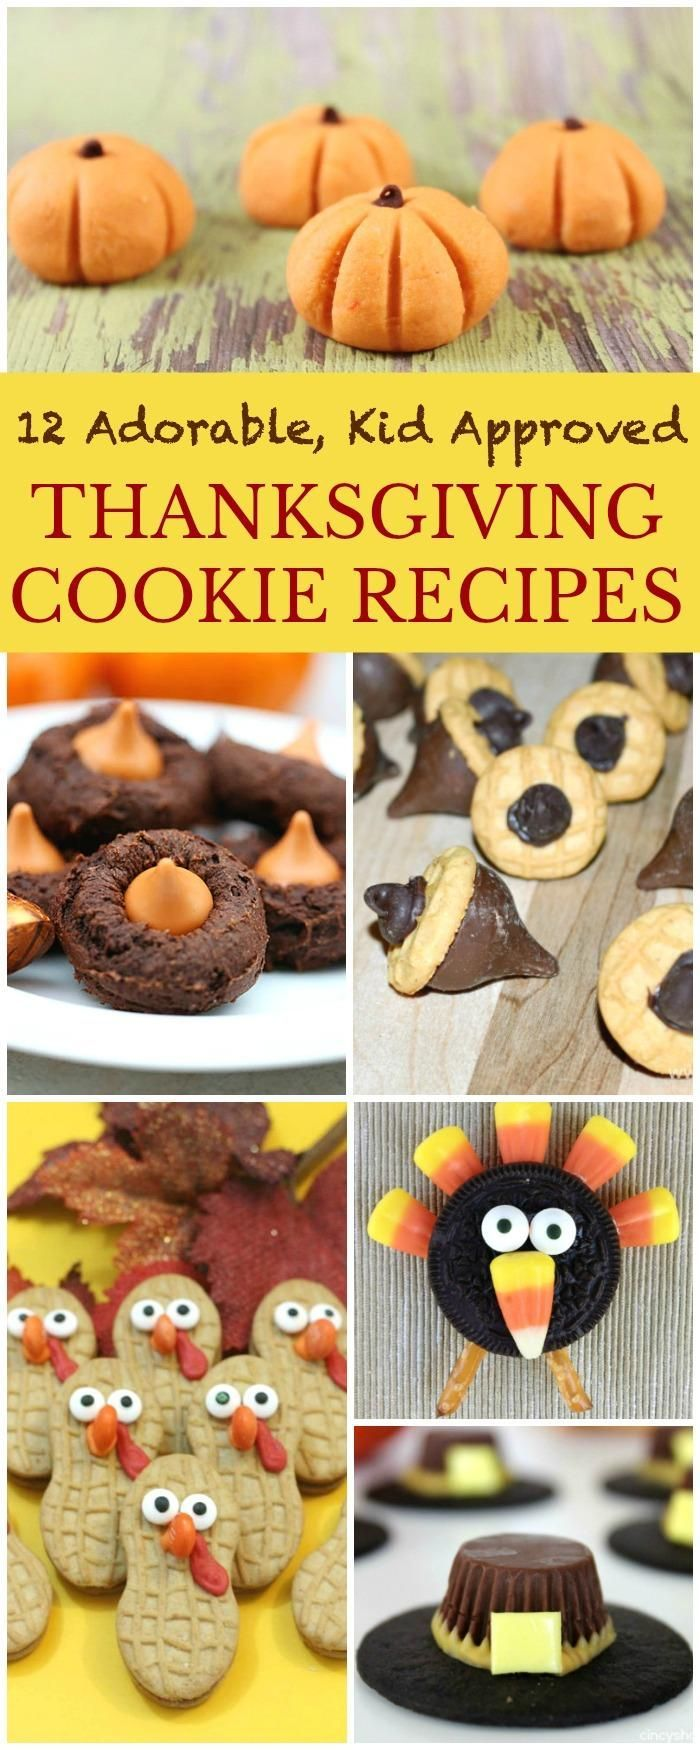 Thanksgiving Cookies Recipes are fun to make with your kids and grand kids! Make cookie recipes for Thanksgiving and deliver to Teachers, Firemen and more! #thanksgiving #recipes #holidays #thanksgivingrecipes